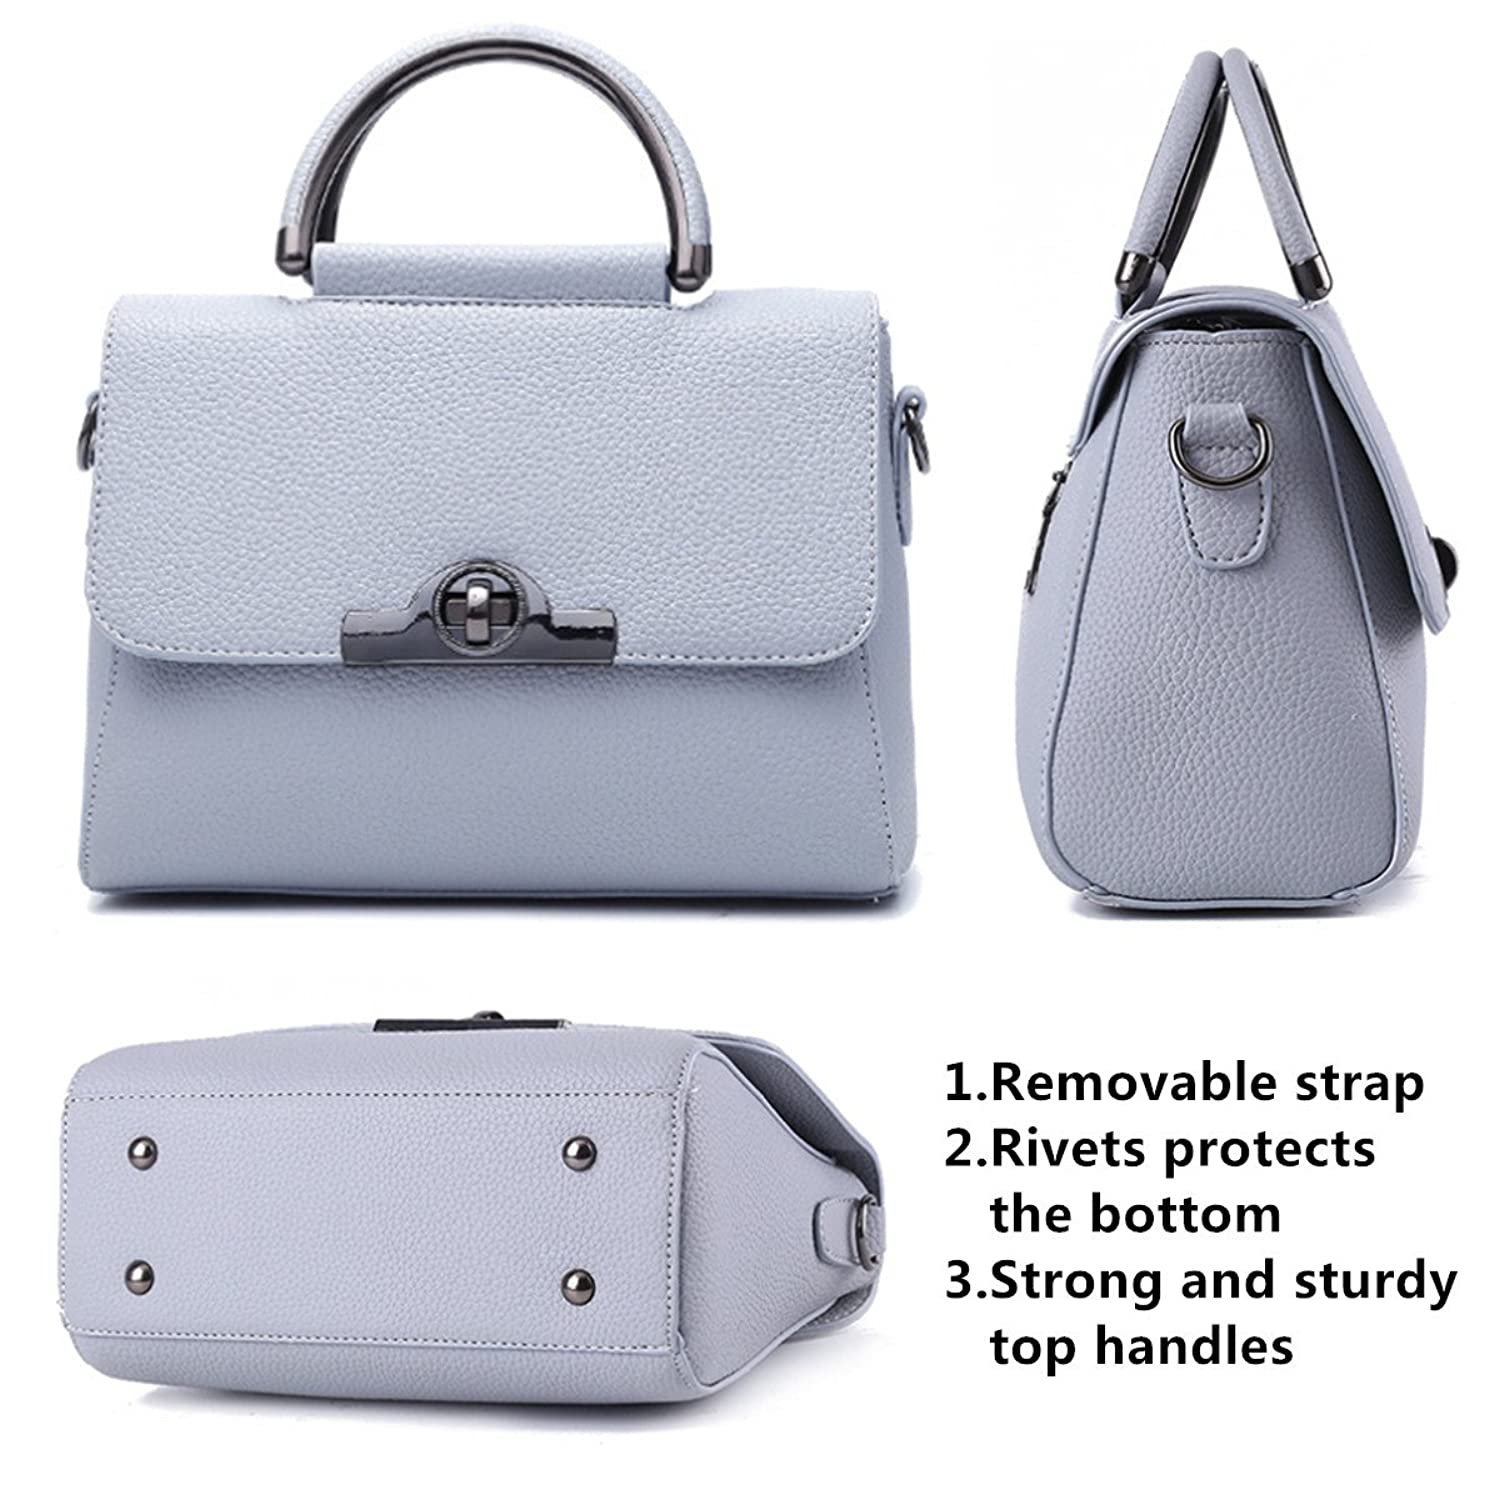 62301e921e Office Lady Top handle Handbag Shopping Crossbody Shoulder Bag Fashion Tote  Handbags Business Satchel Purse with Flap Cover and Turn Lock for Women  Beige  ...